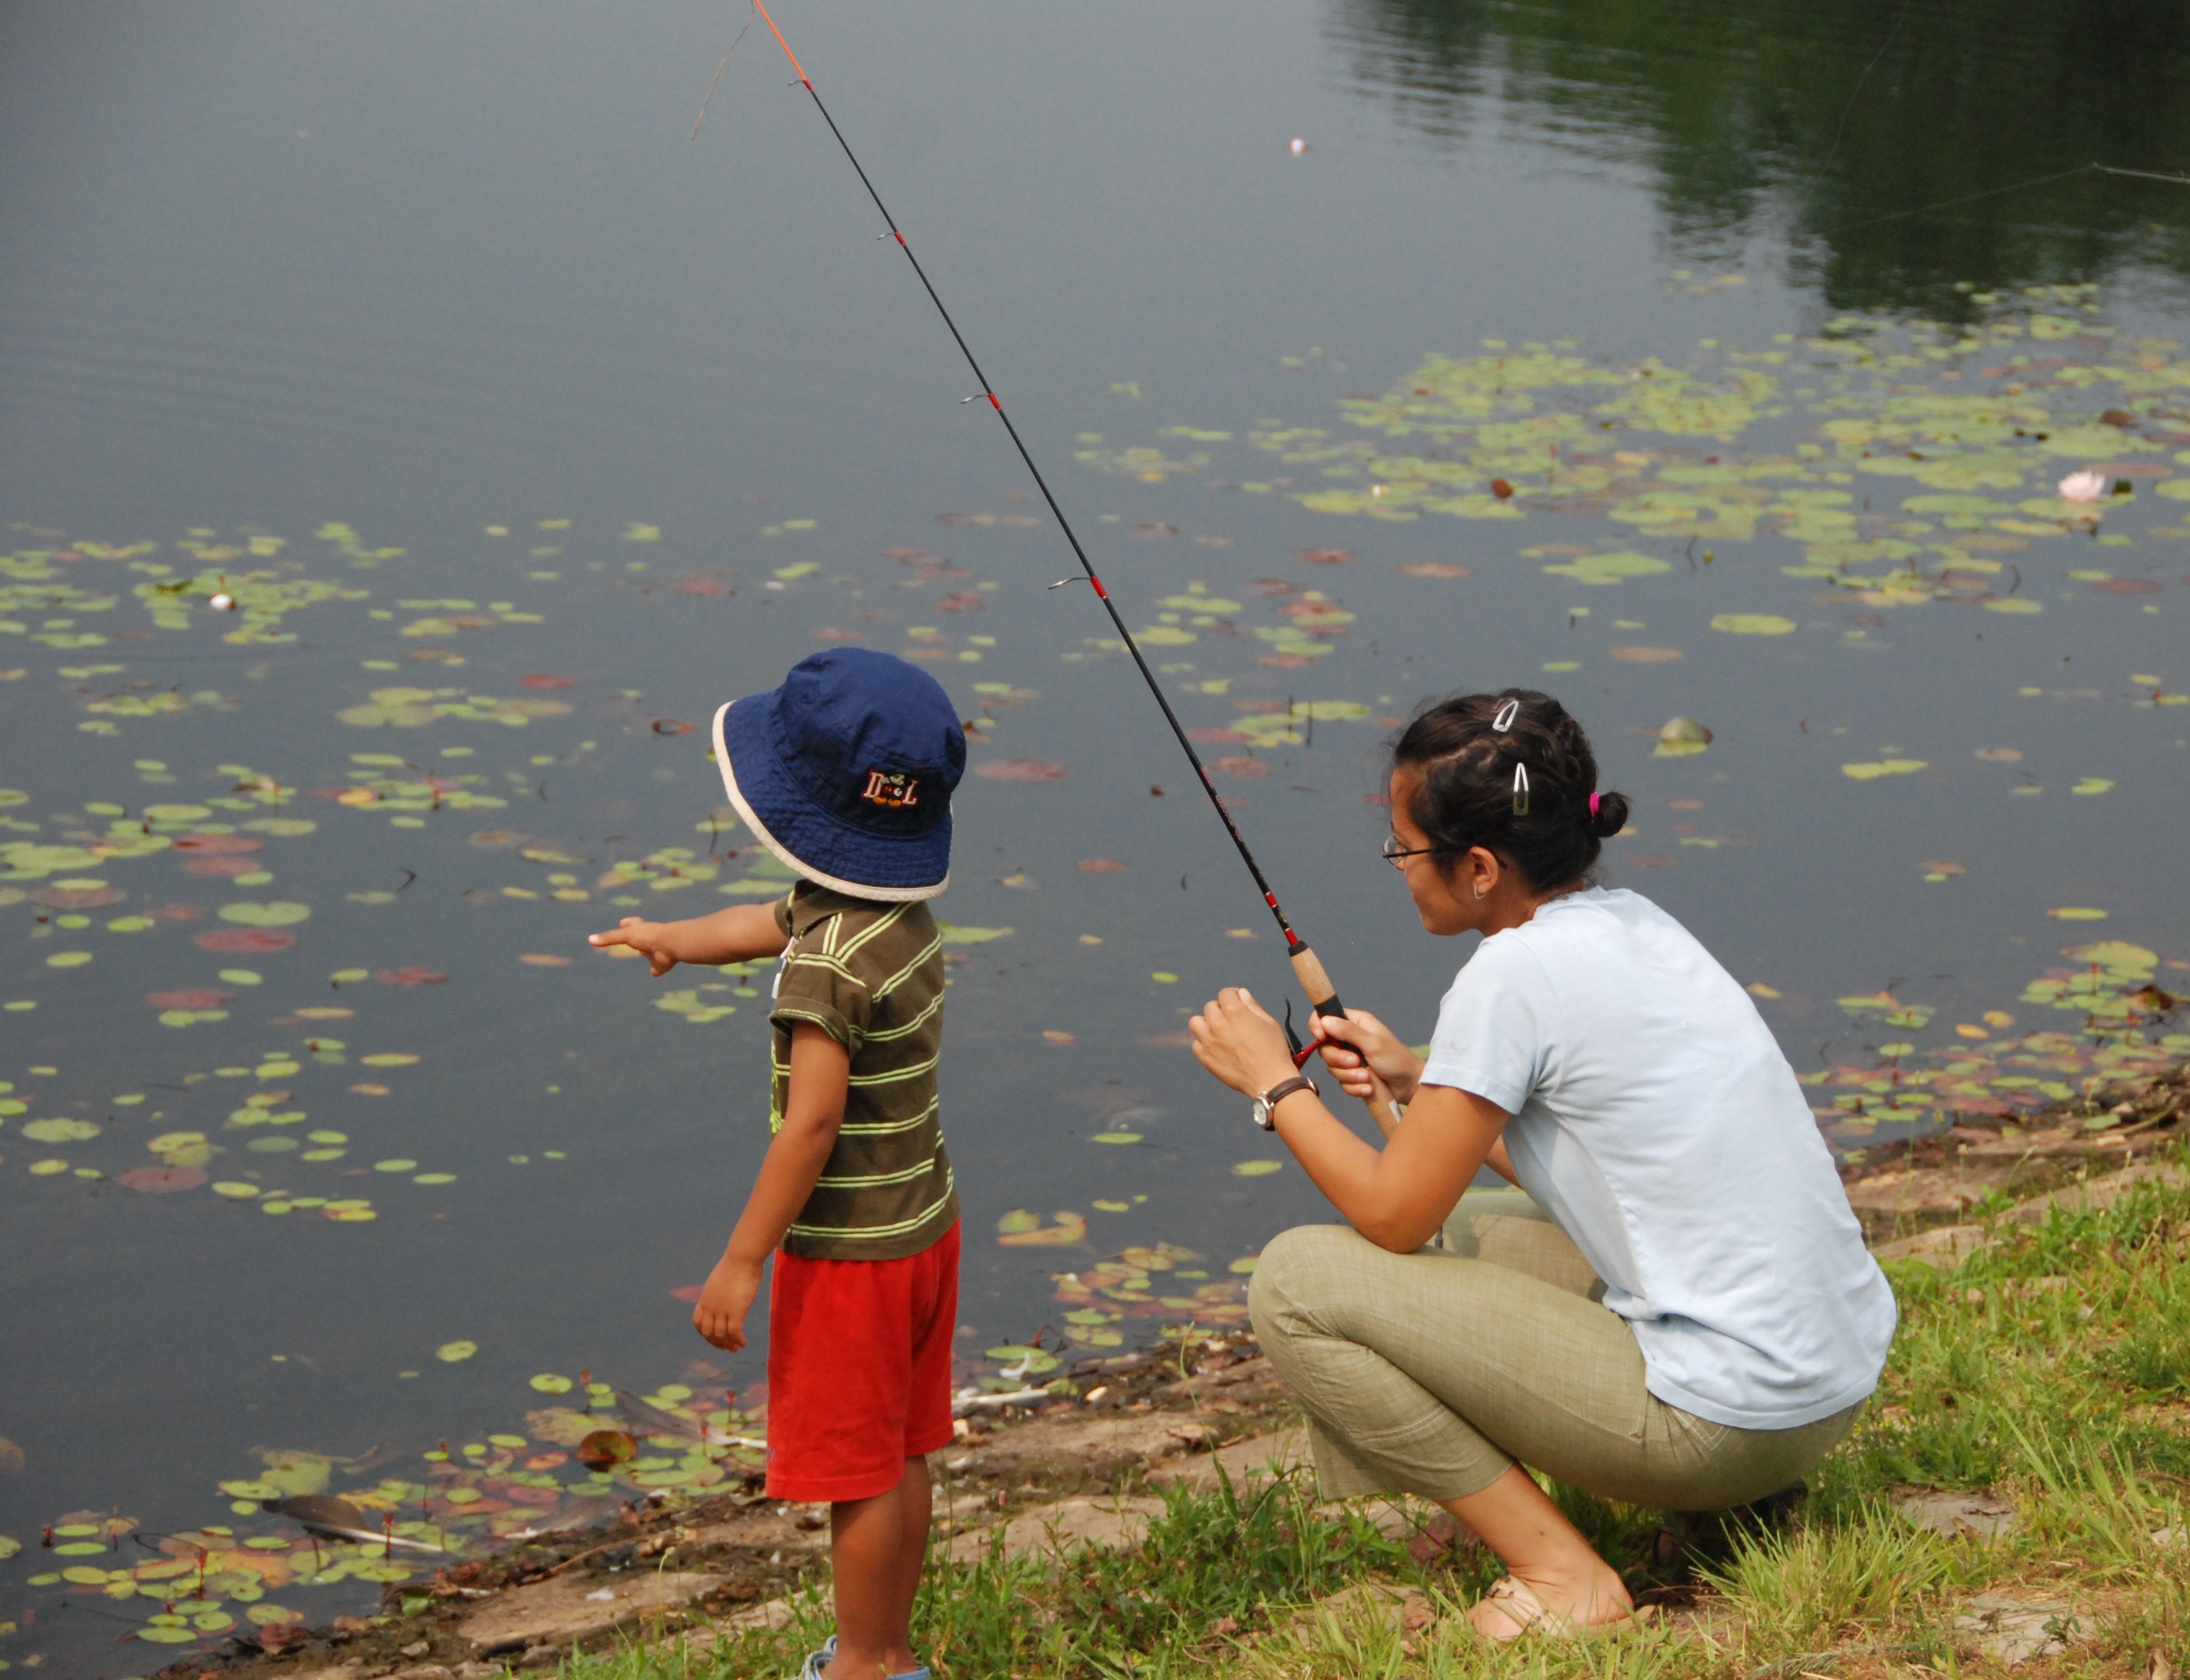 A woman fishes on the bank of a pond next to a small child.